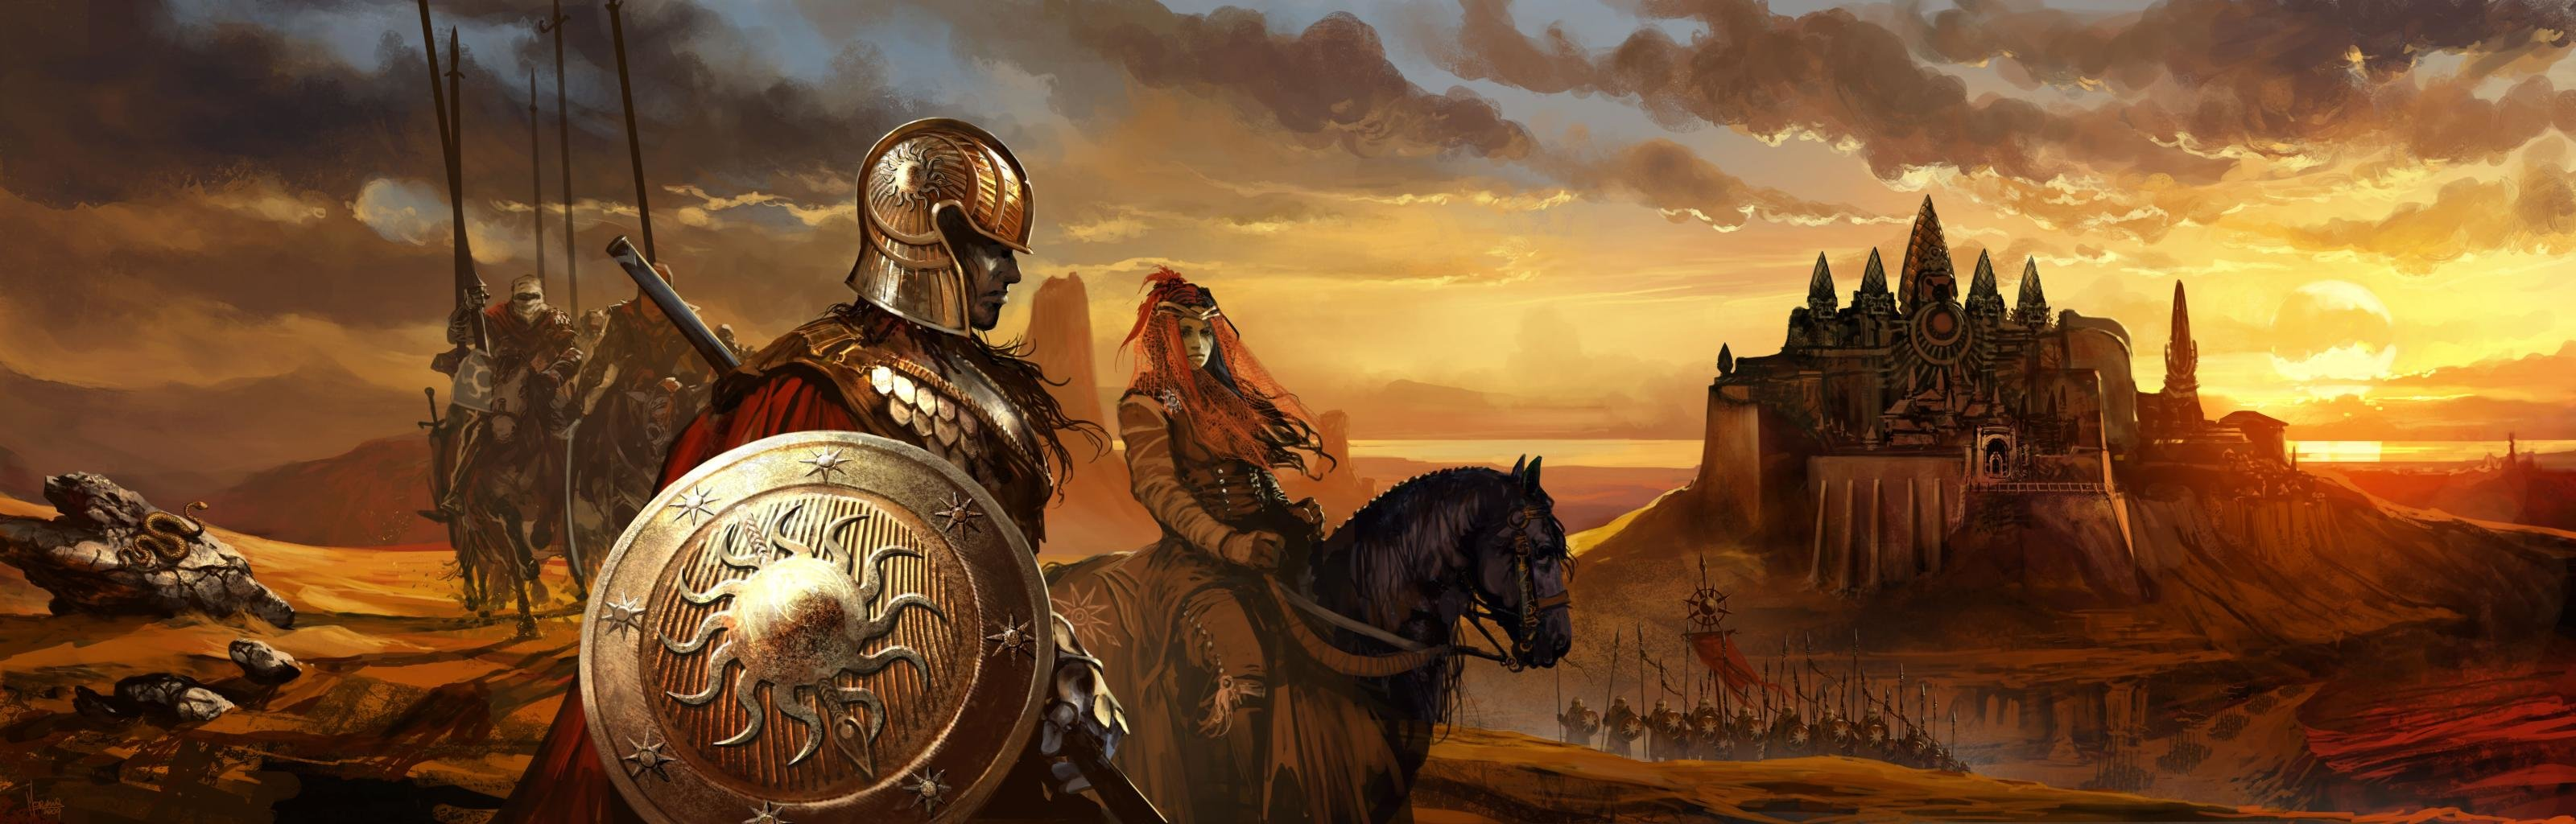 Best A Song Of Ice And Fire wallpaper ID:213613 for High Resolution dual monitor 3200x1024 desktop